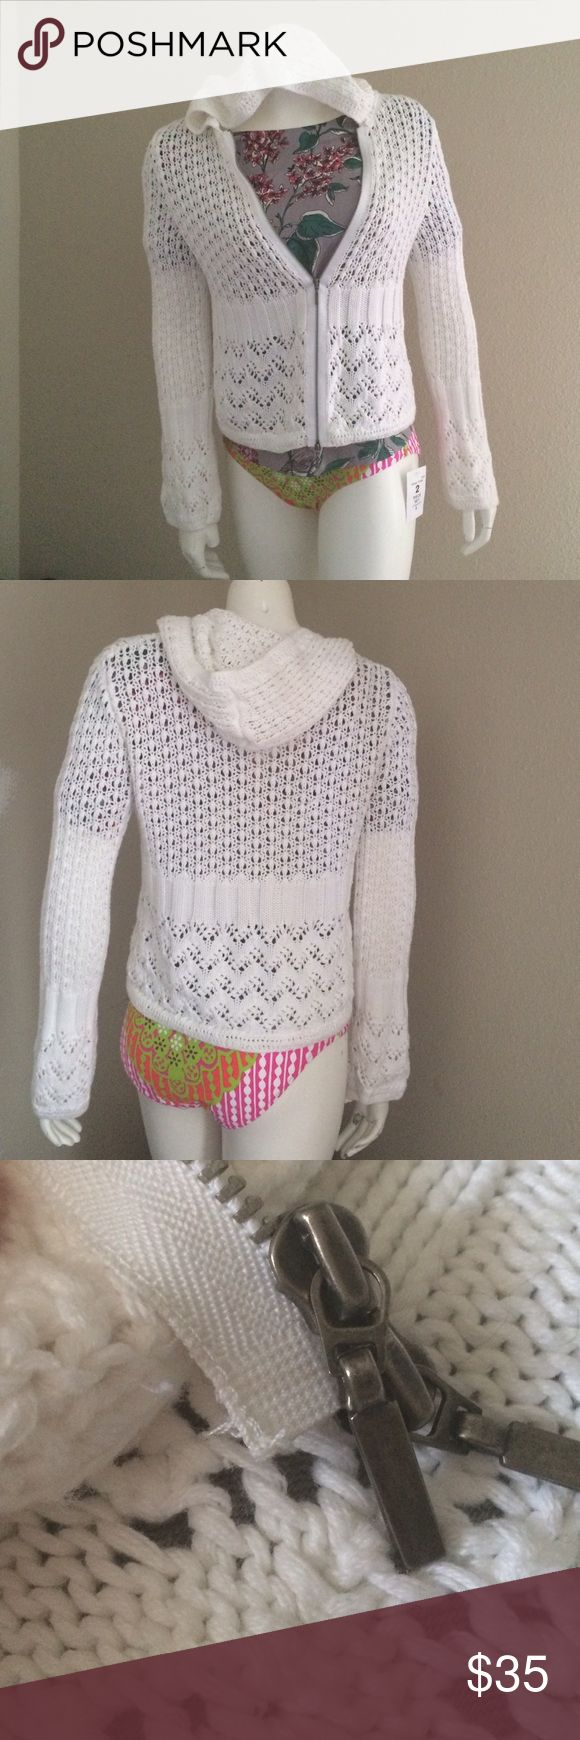 Cabi crochet zip up hoodie sweater In good used condition. White 100% cotton crochet hoodie. Only flaw is the zipper has a little un treading at the bottom and 1 pull on the inside bodice as shown in pics. Price reflects flaws. CAbi Tops Sweatshirts & Hoodies